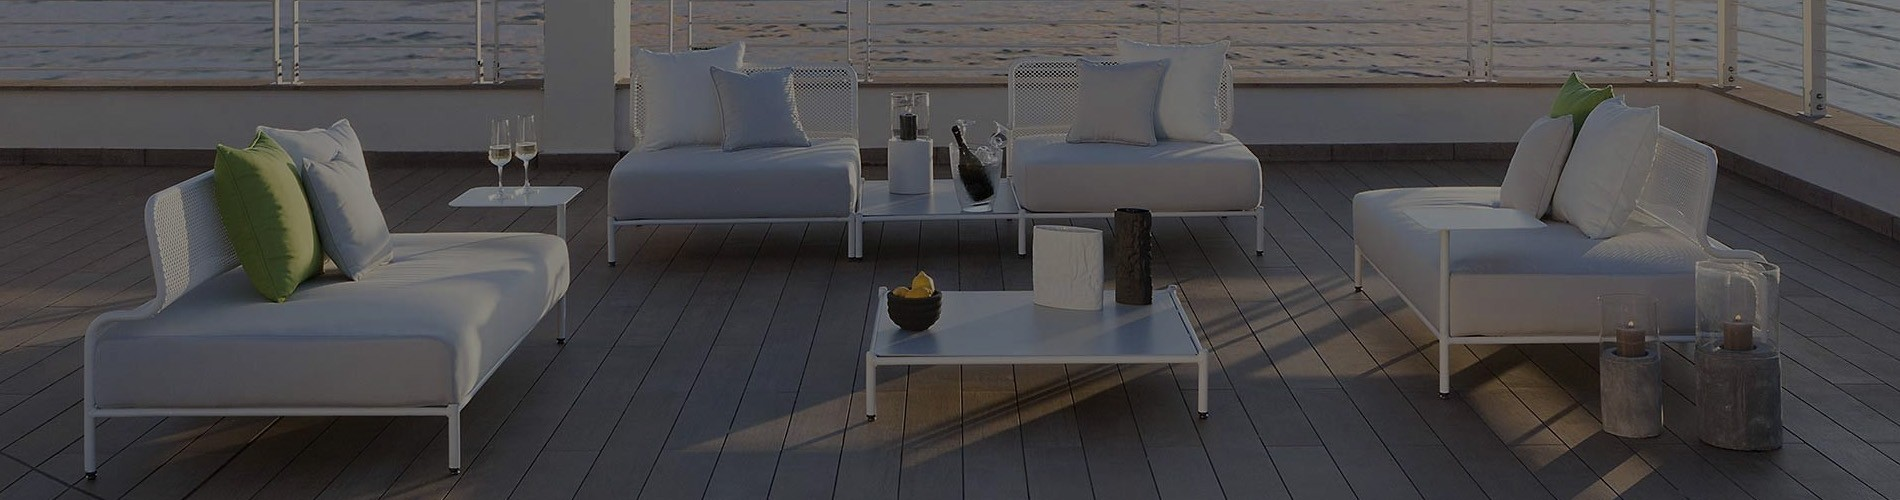 Contemporary Garden Furniture | Outdoor Sofa Tables Chairs Set